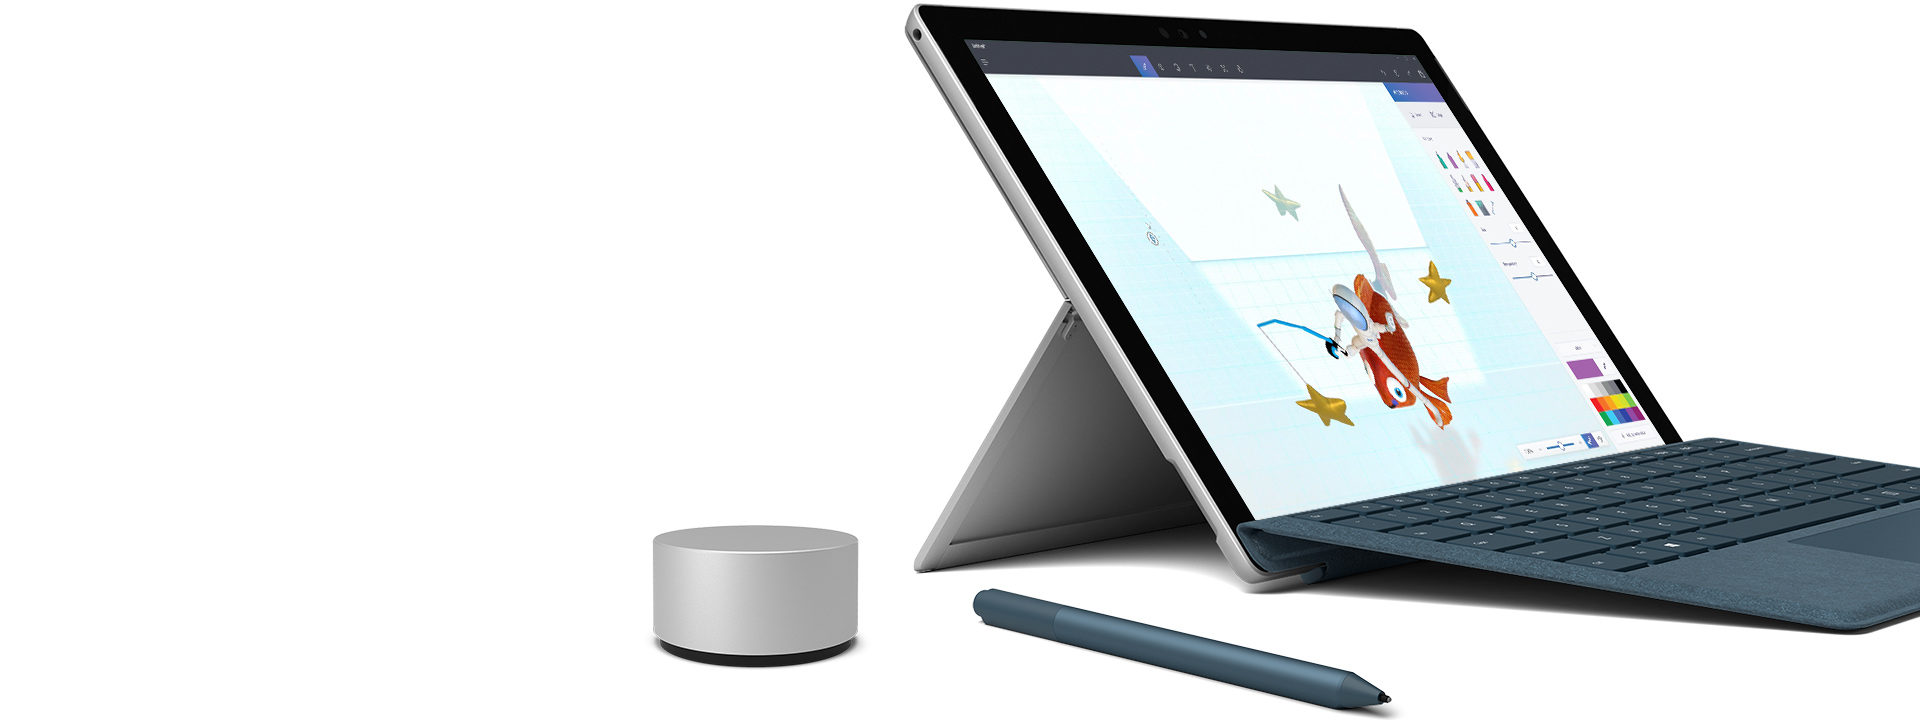 Surface Pro in laptopmodus met Surface Dial, pen en Type Cover.